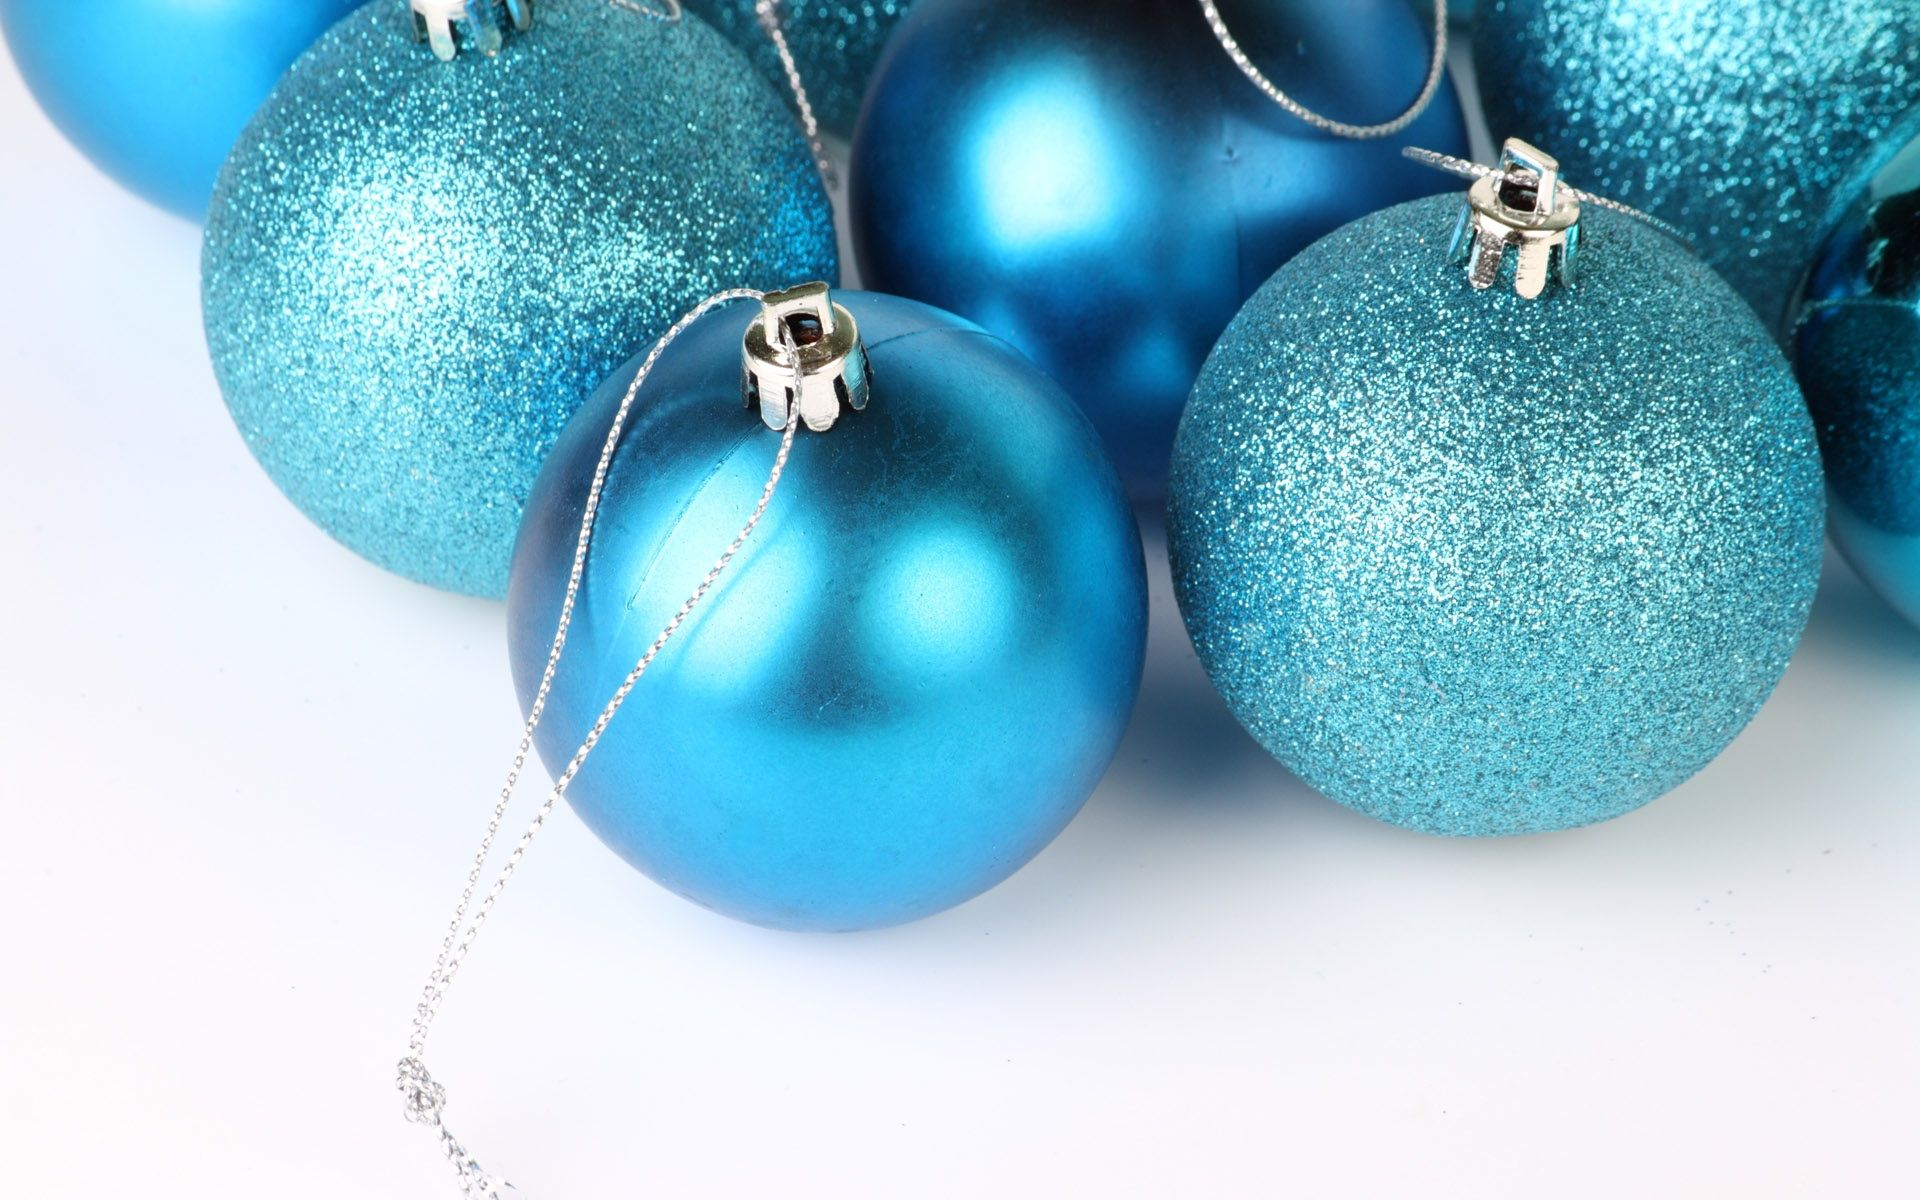 Christmas Ornaments Wallpaper 38741 Christmas Wallpaper Free Blue Christmas Ornaments Colorful Christmas Decorations